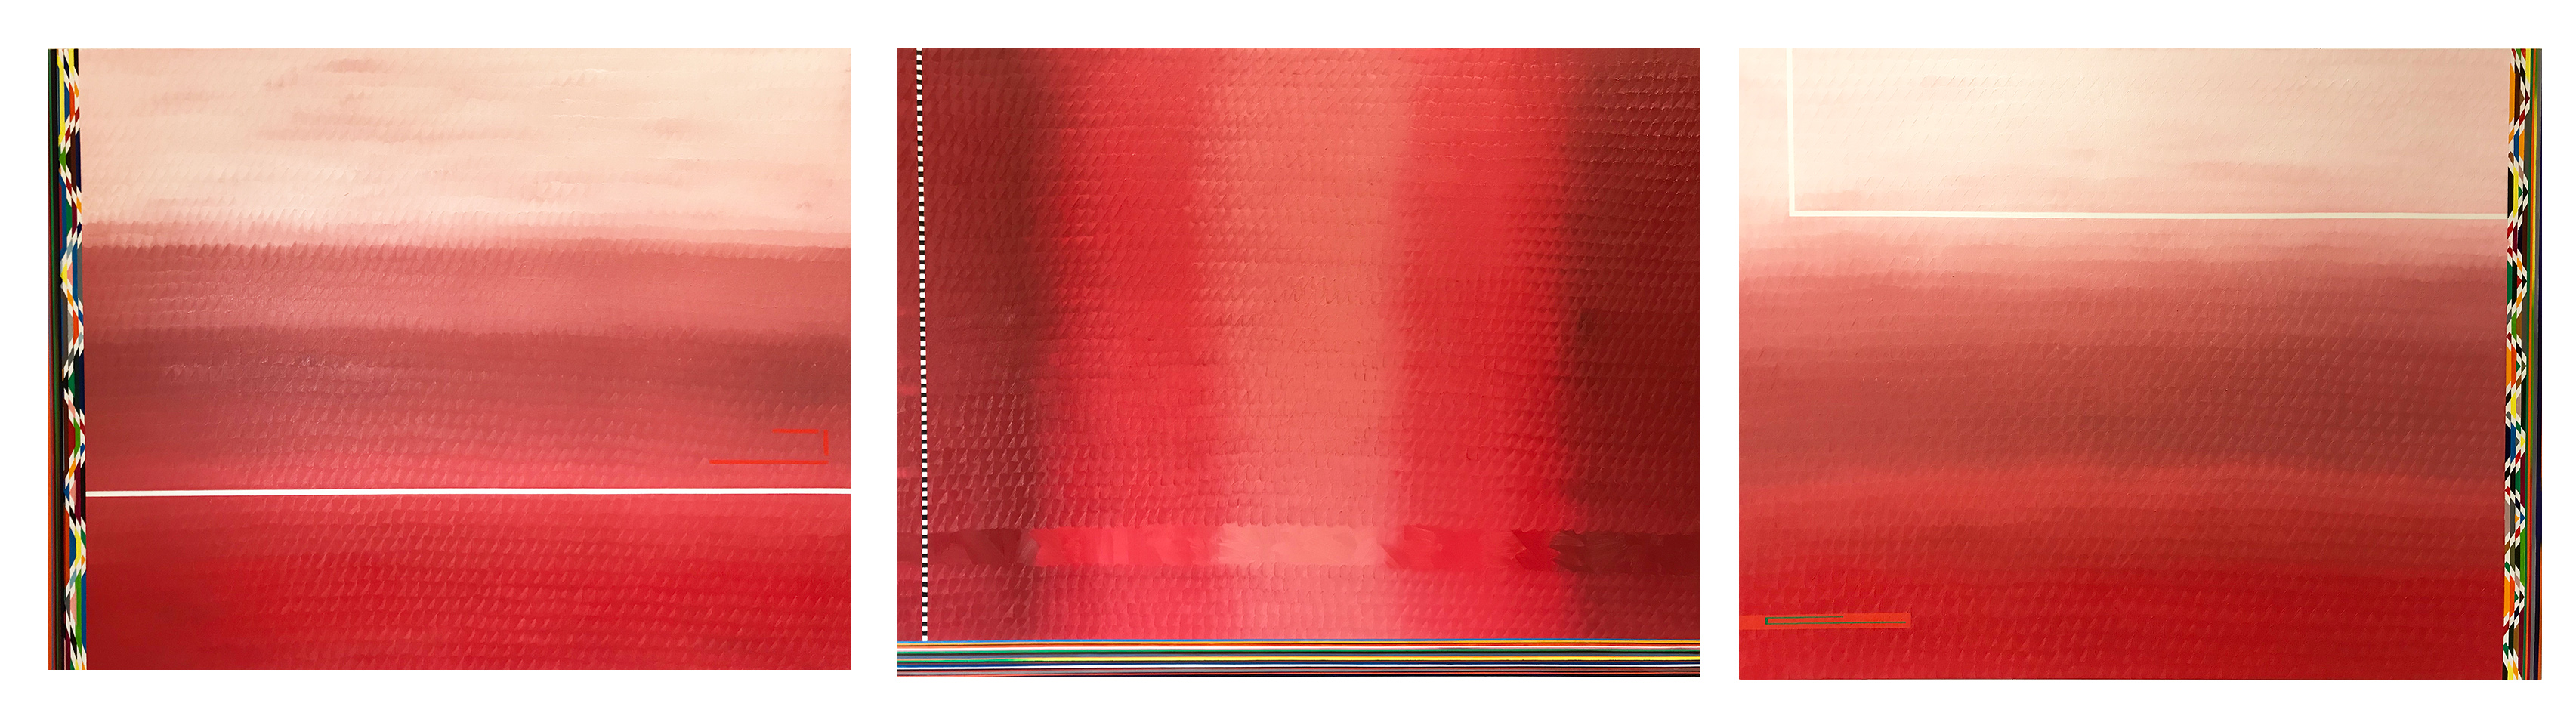 Redscape geom (triptych, 89x116cm each) 2017 (private collection)